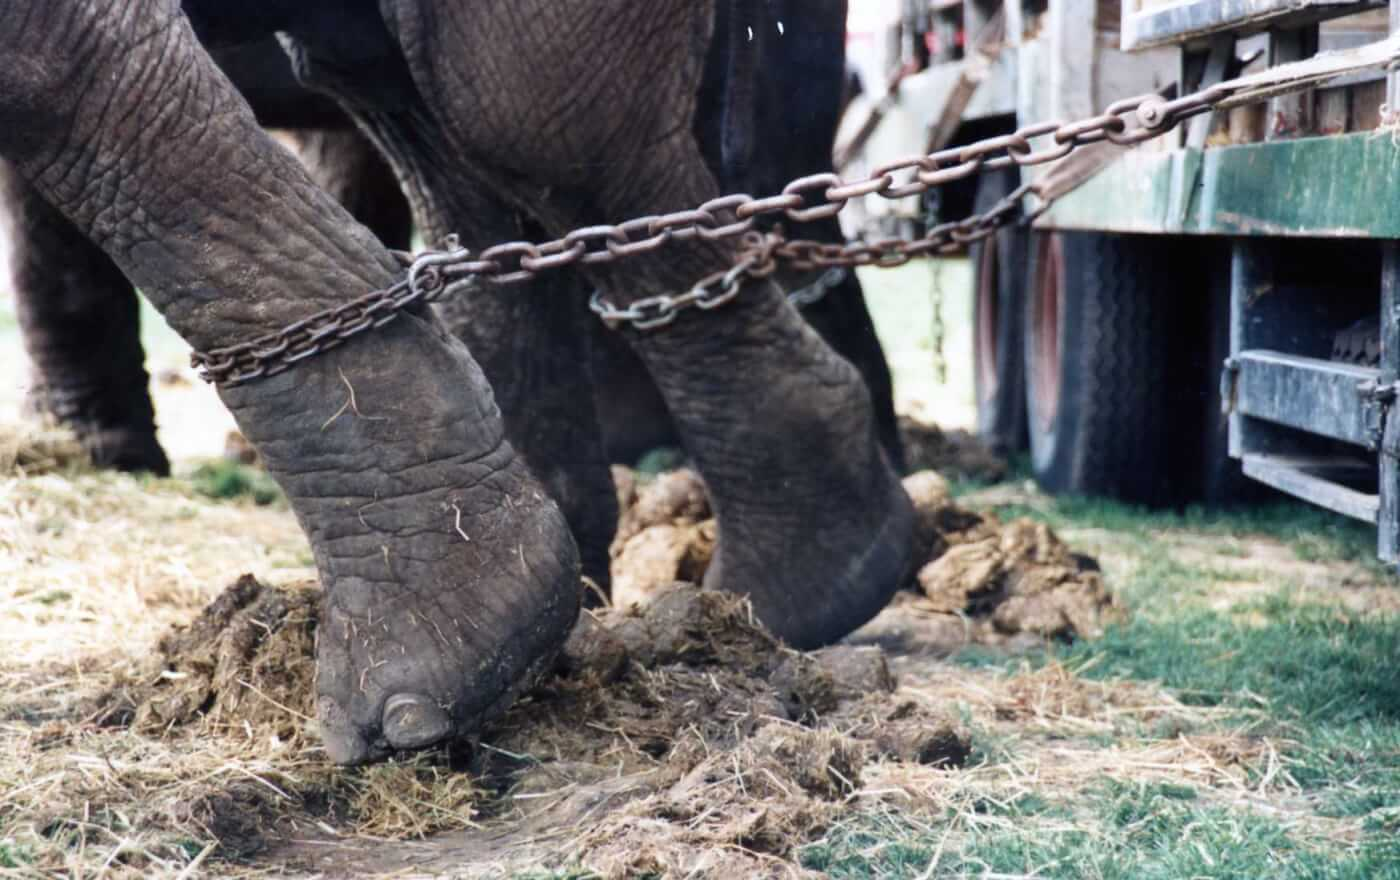 Animal Abuse Circus if a Circus That Uses Animals